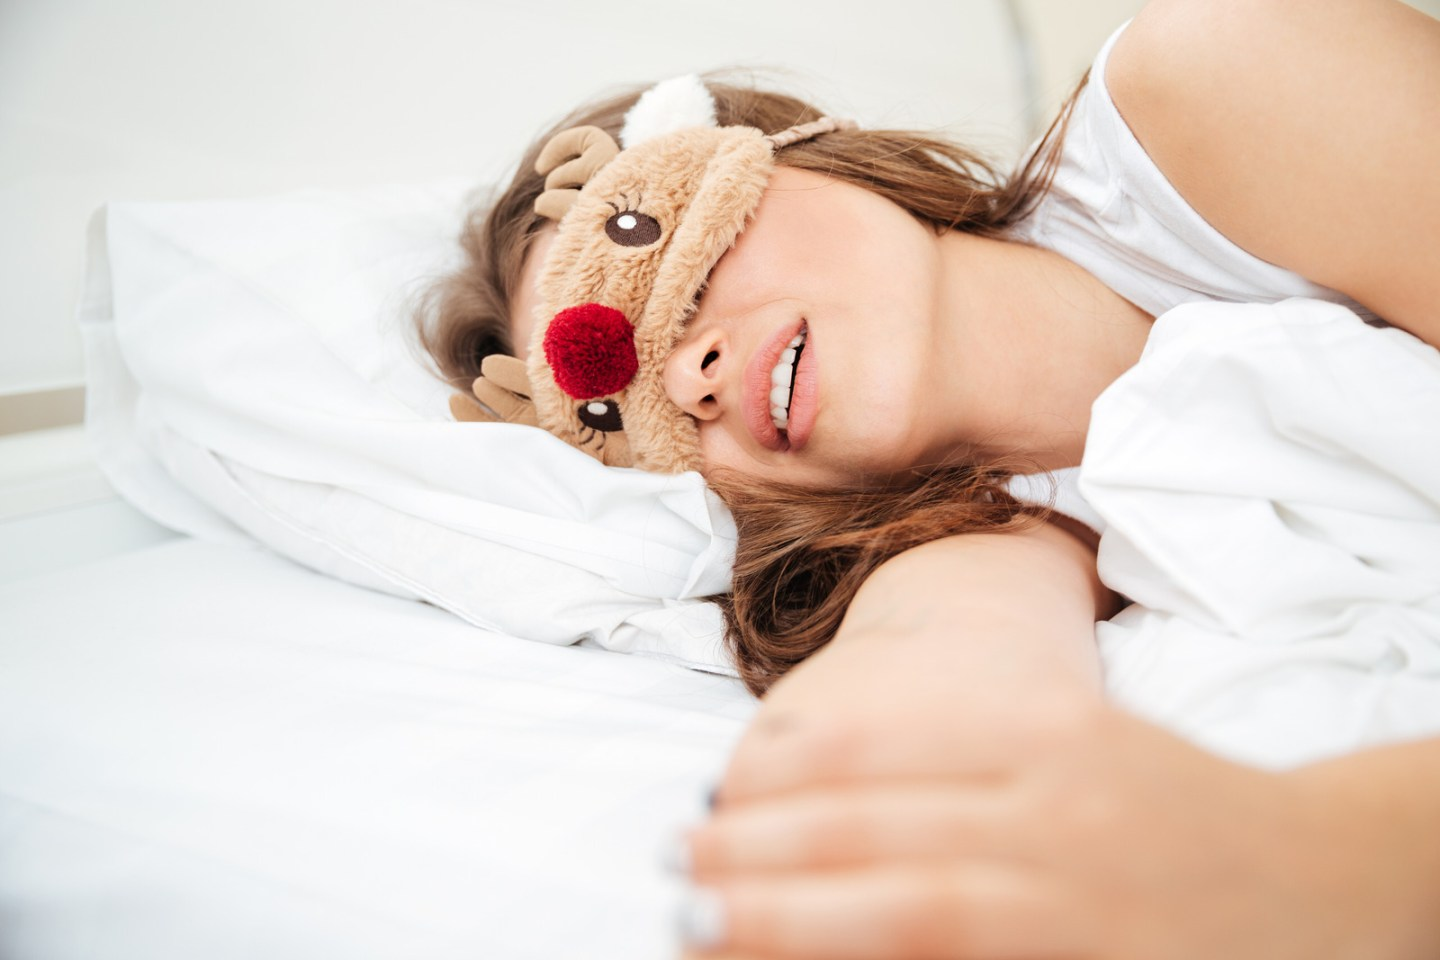 Beautiful woman sleeping on the bed with eye mask